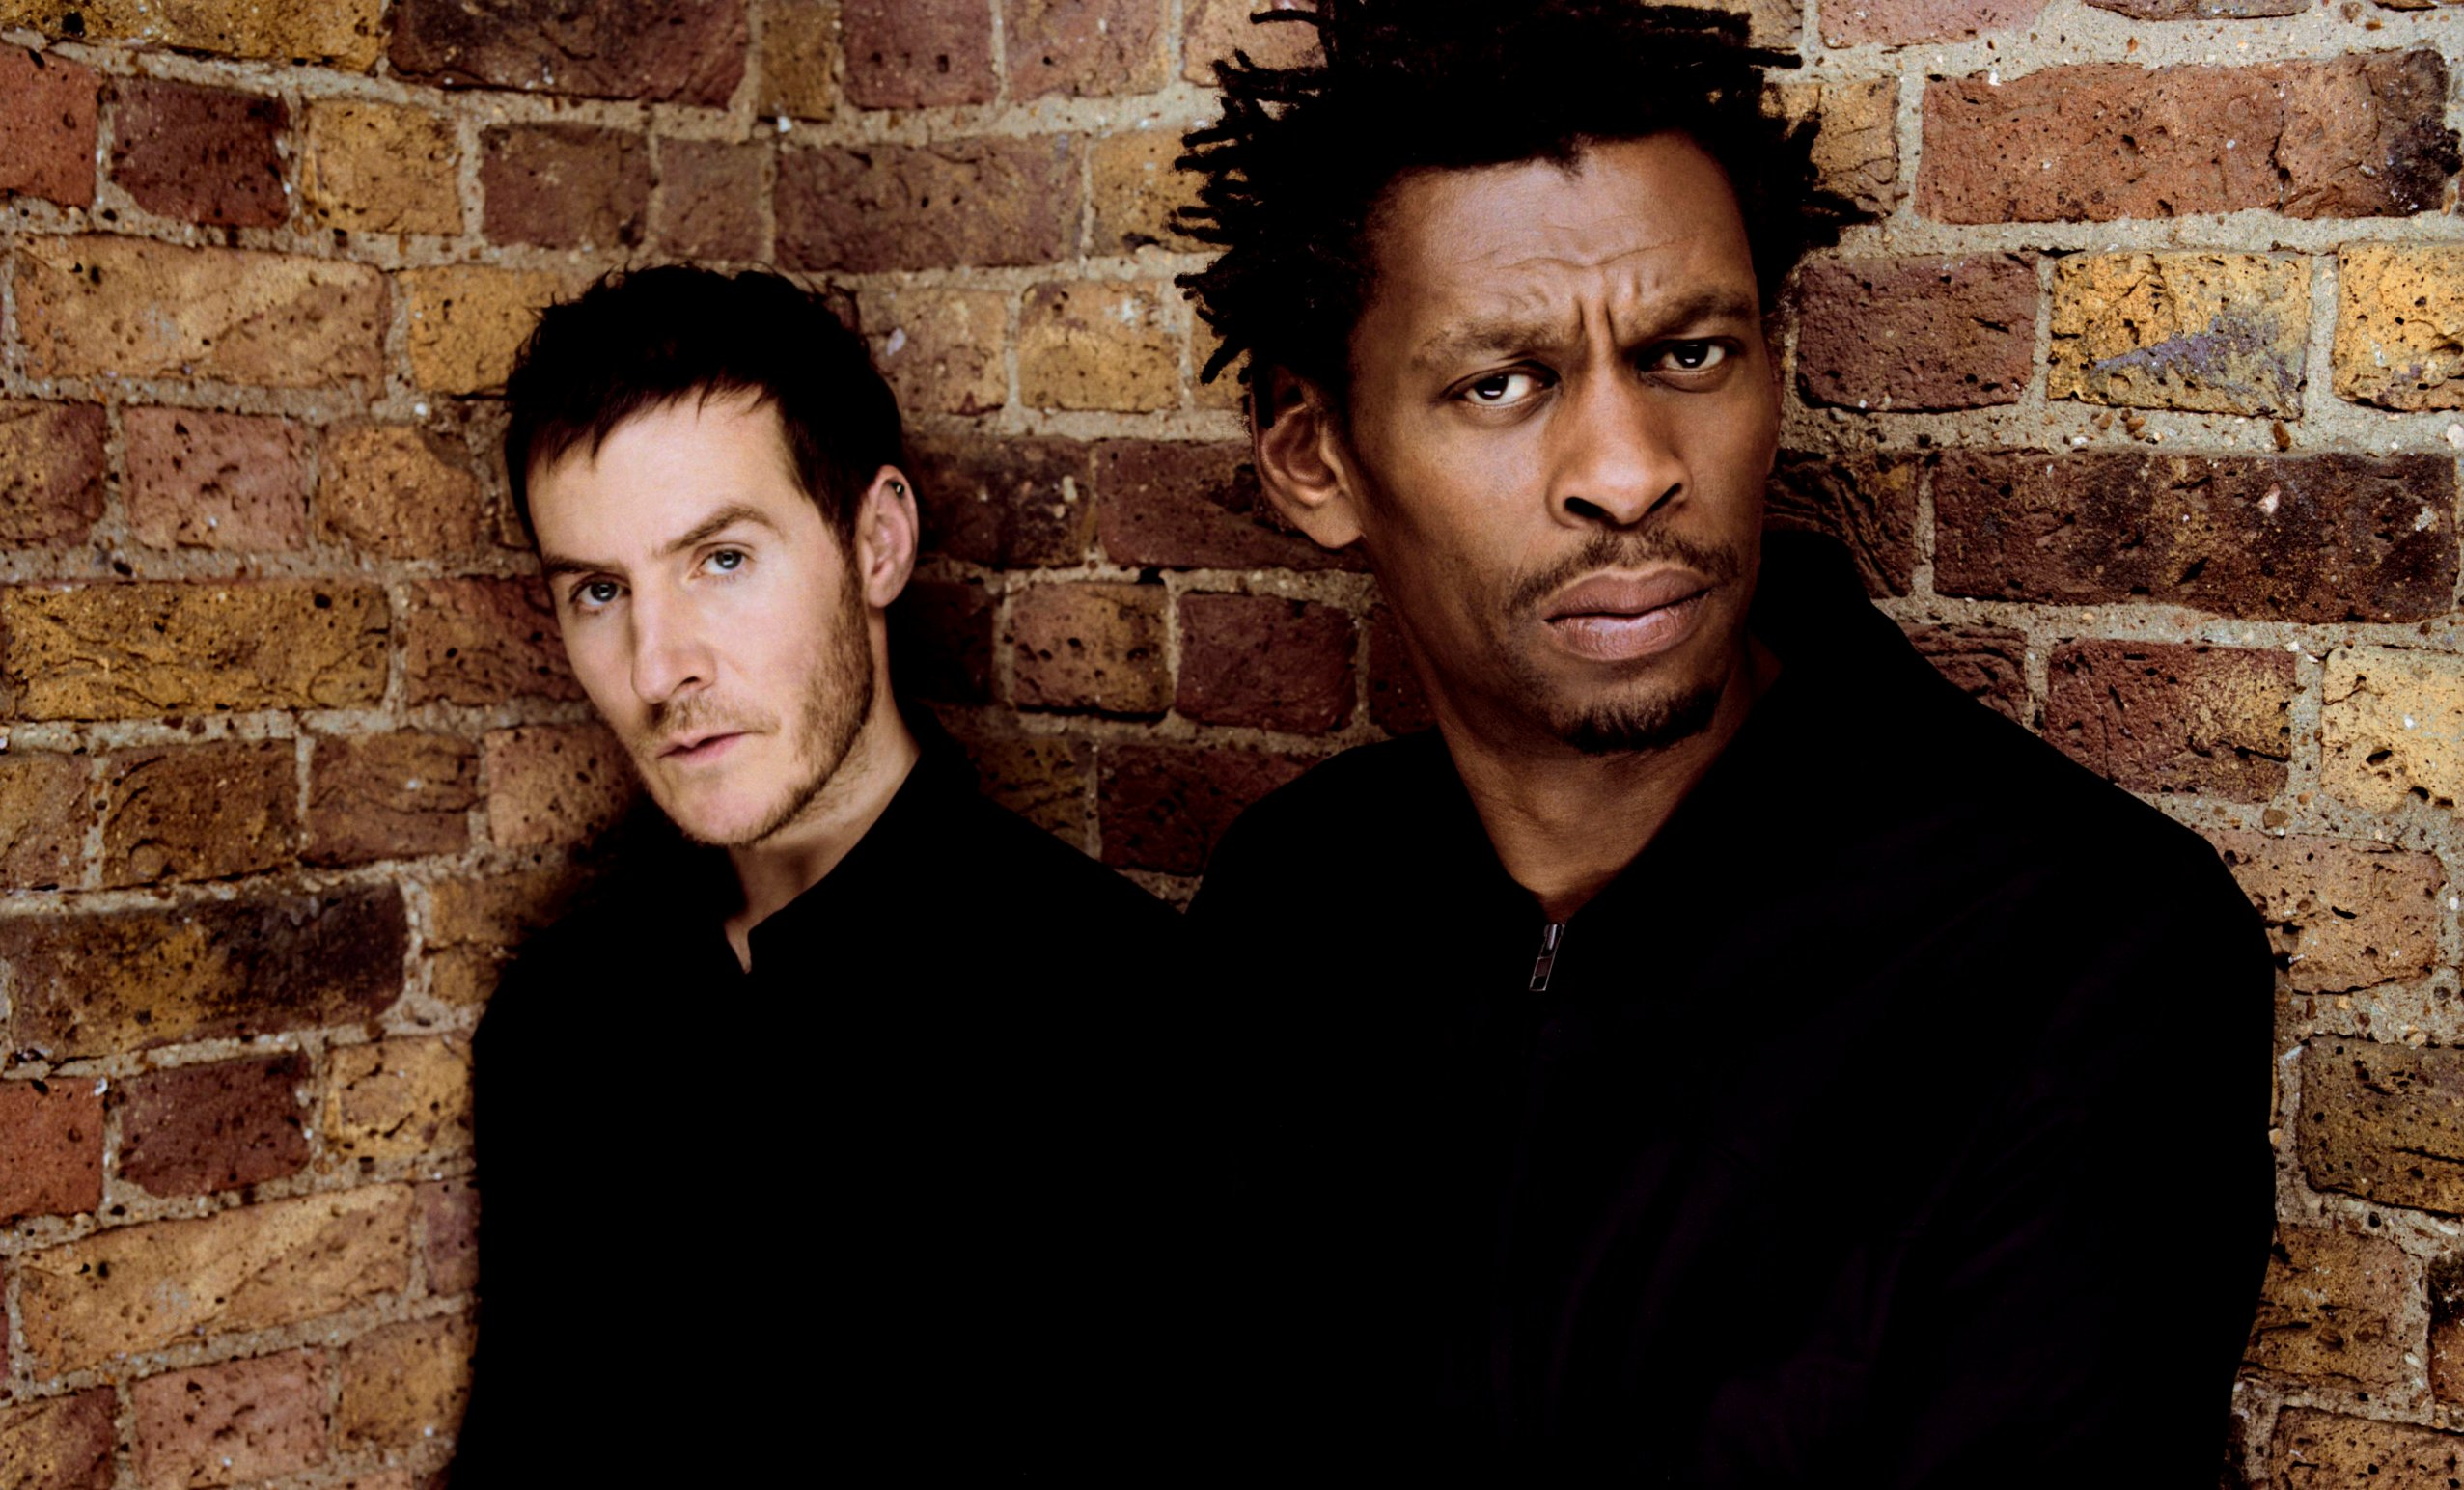 Round Hill acquires catalog of Massive Attack members Robert Del Naja and Grant Marshall – Music Business Worldwide